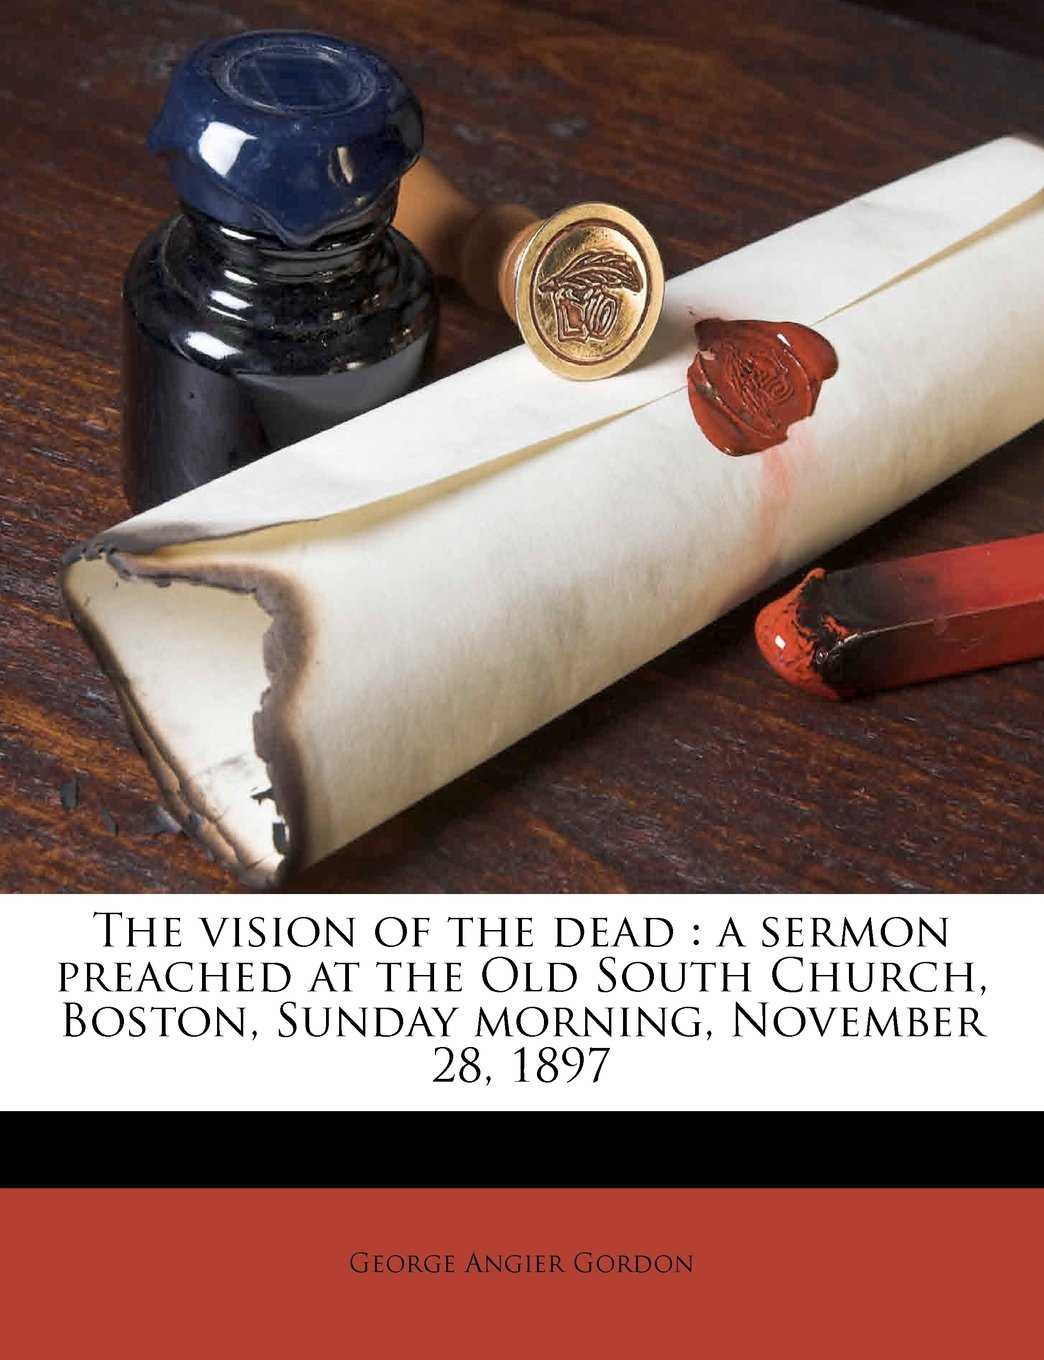 The vision of the dead: a sermon preached at the Old South Church, Boston, Sunday morning, November 28, 1897 pdf